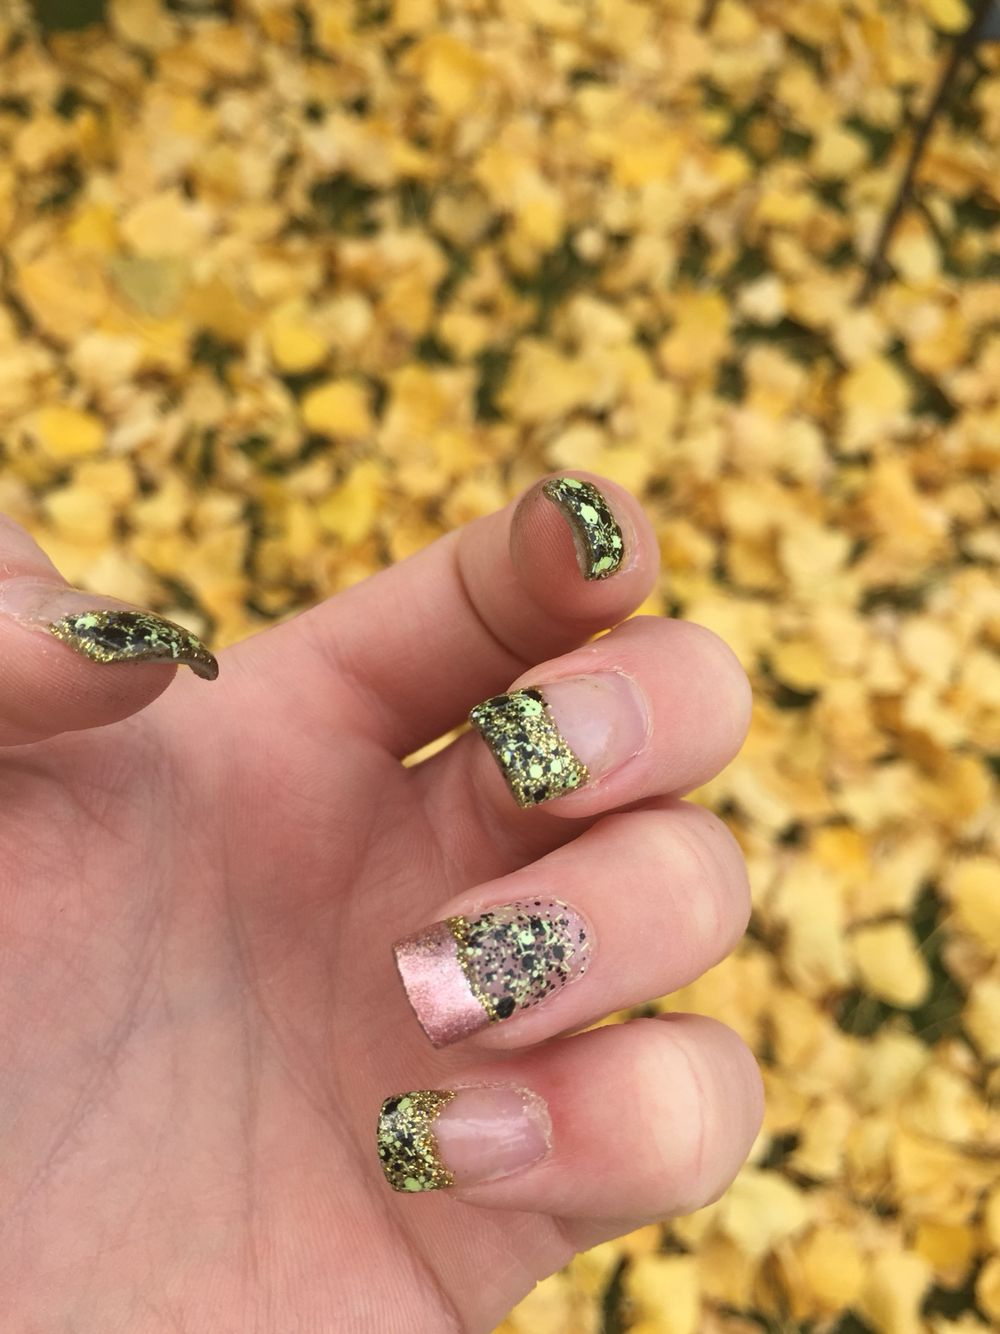 My fall nails:) done by yours truly